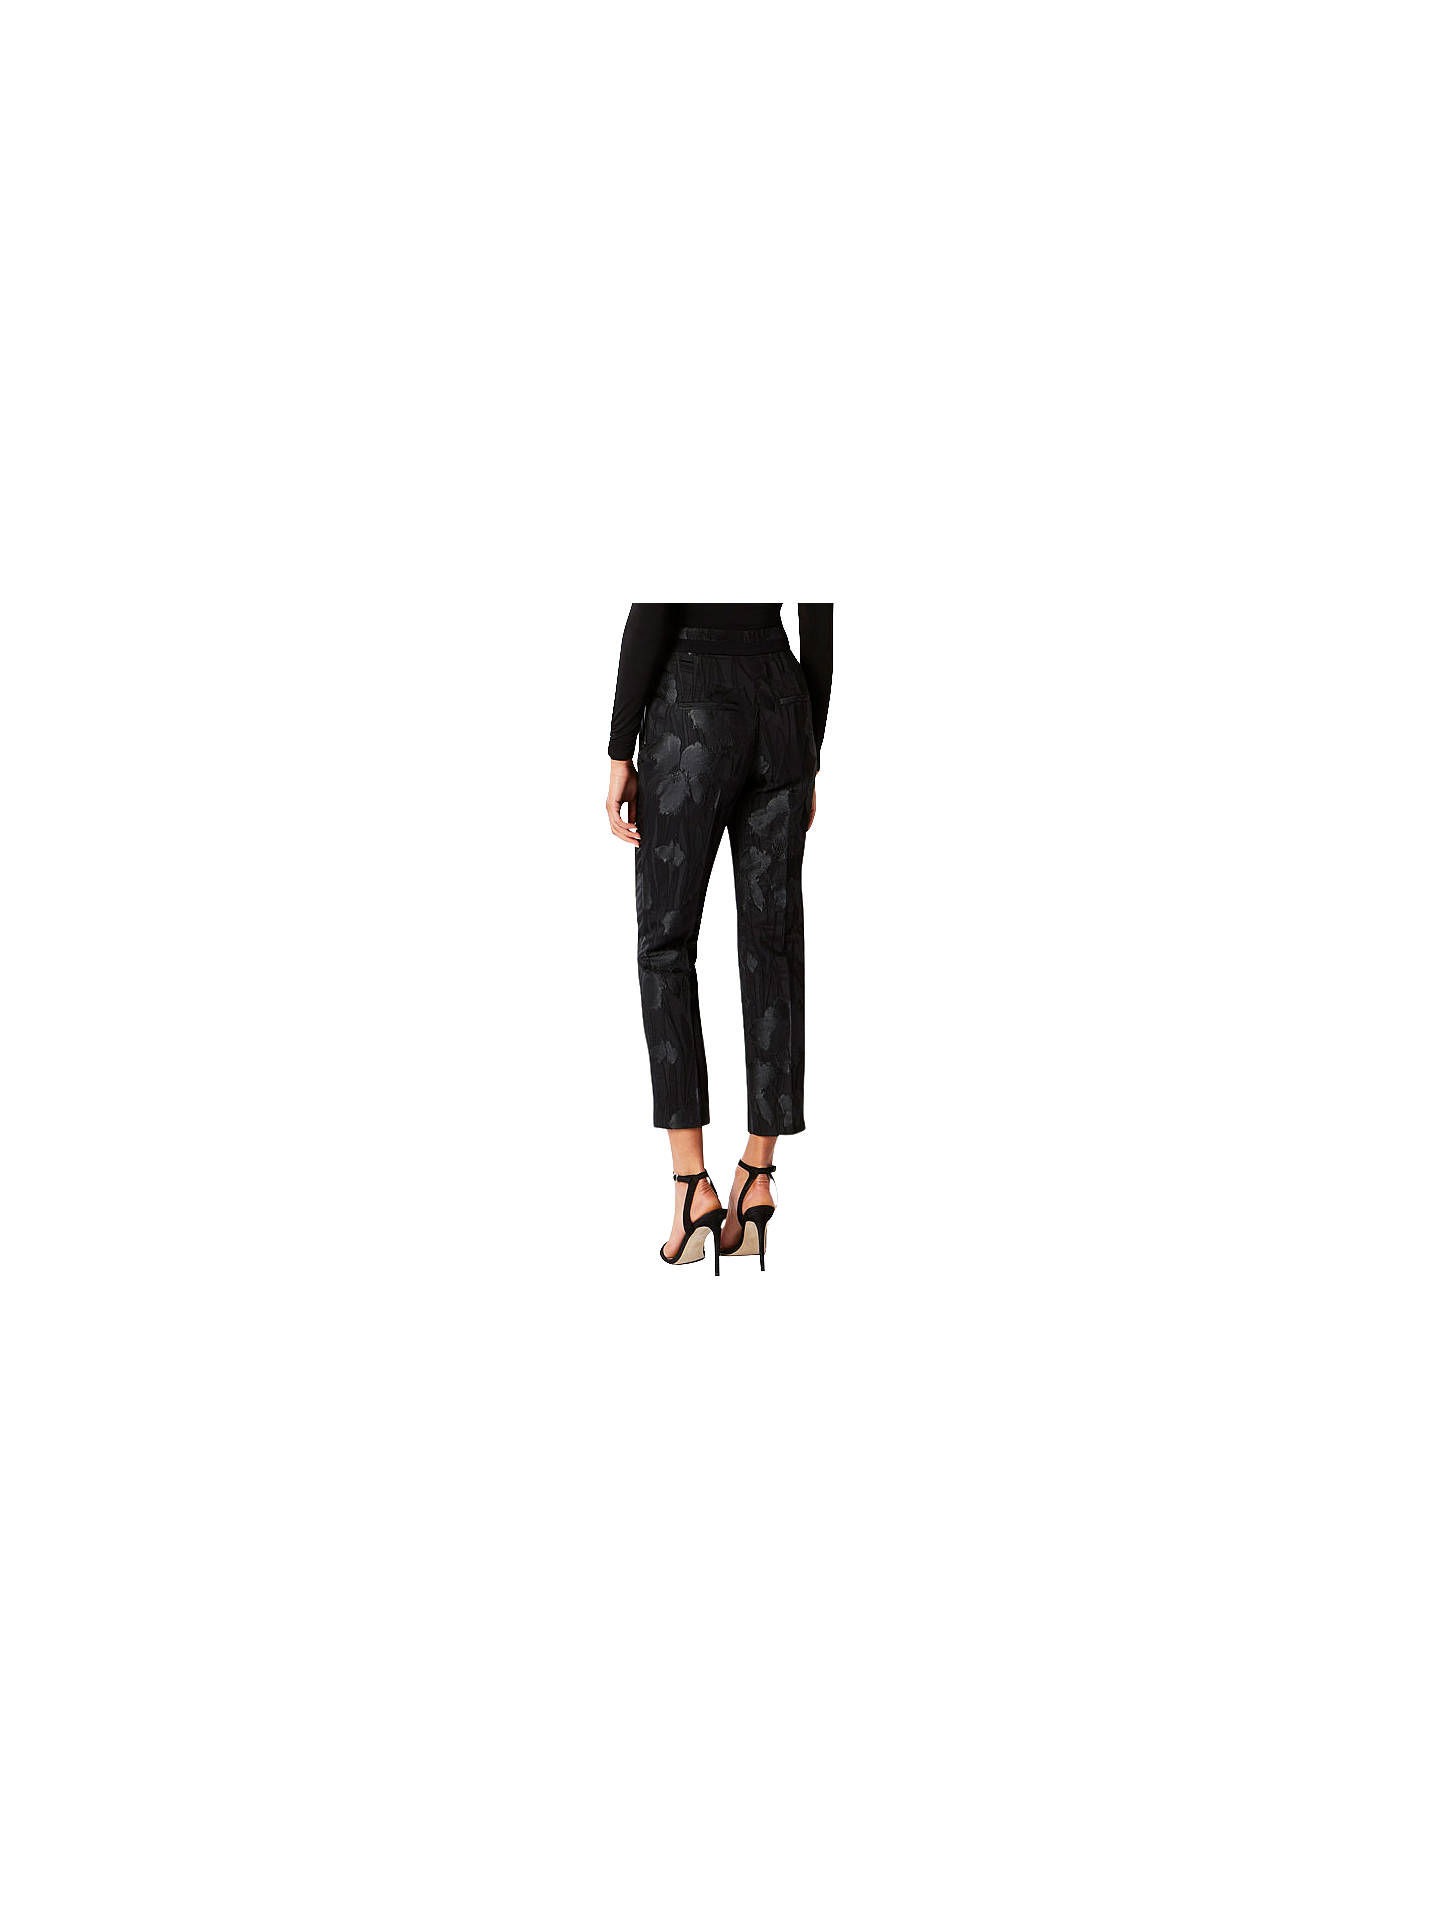 BuyCoast Ivana Jacquard Trousers, Black, 6S Online at johnlewis.com